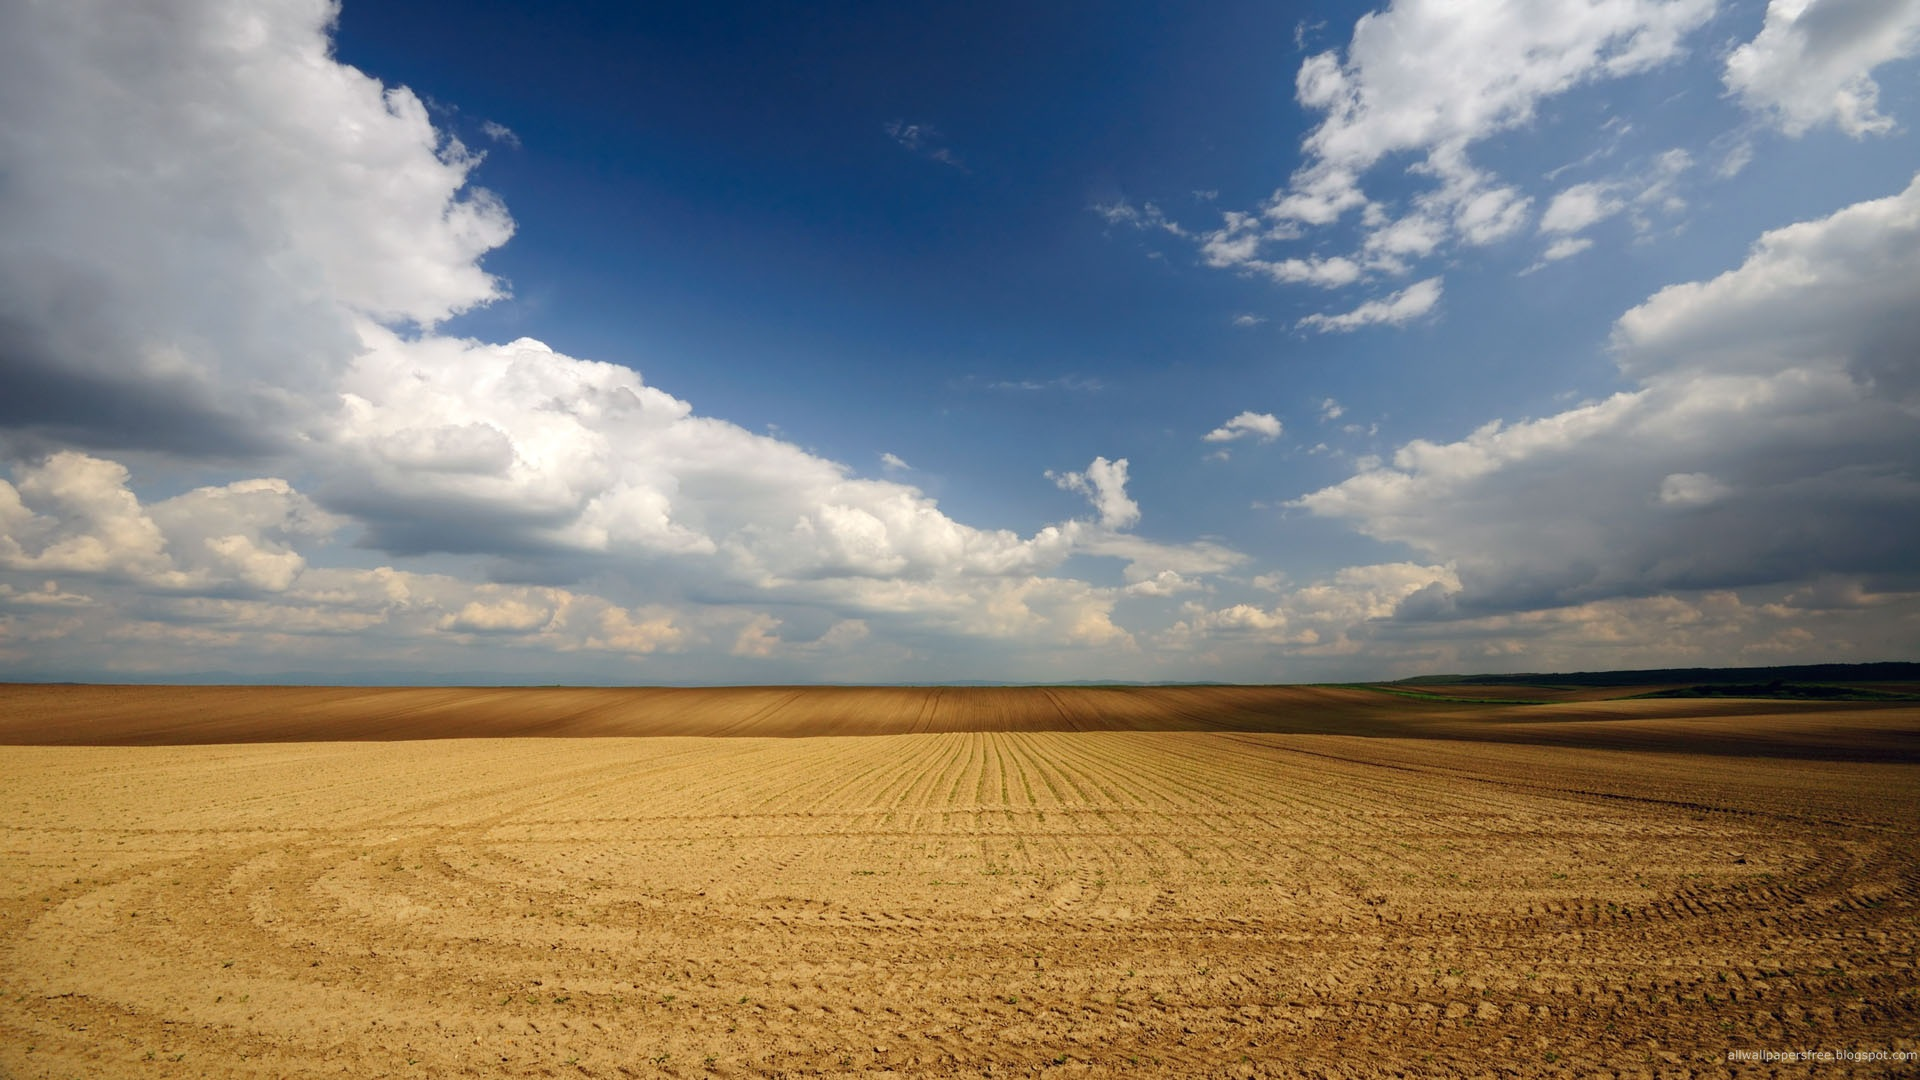 click to free download the wallpaper--Beautiful Sceneries of the World - A Full Screen of Yellow Wheats, the Blue Sky, Fields Seem Endless 1920X1080 free wallpaper download